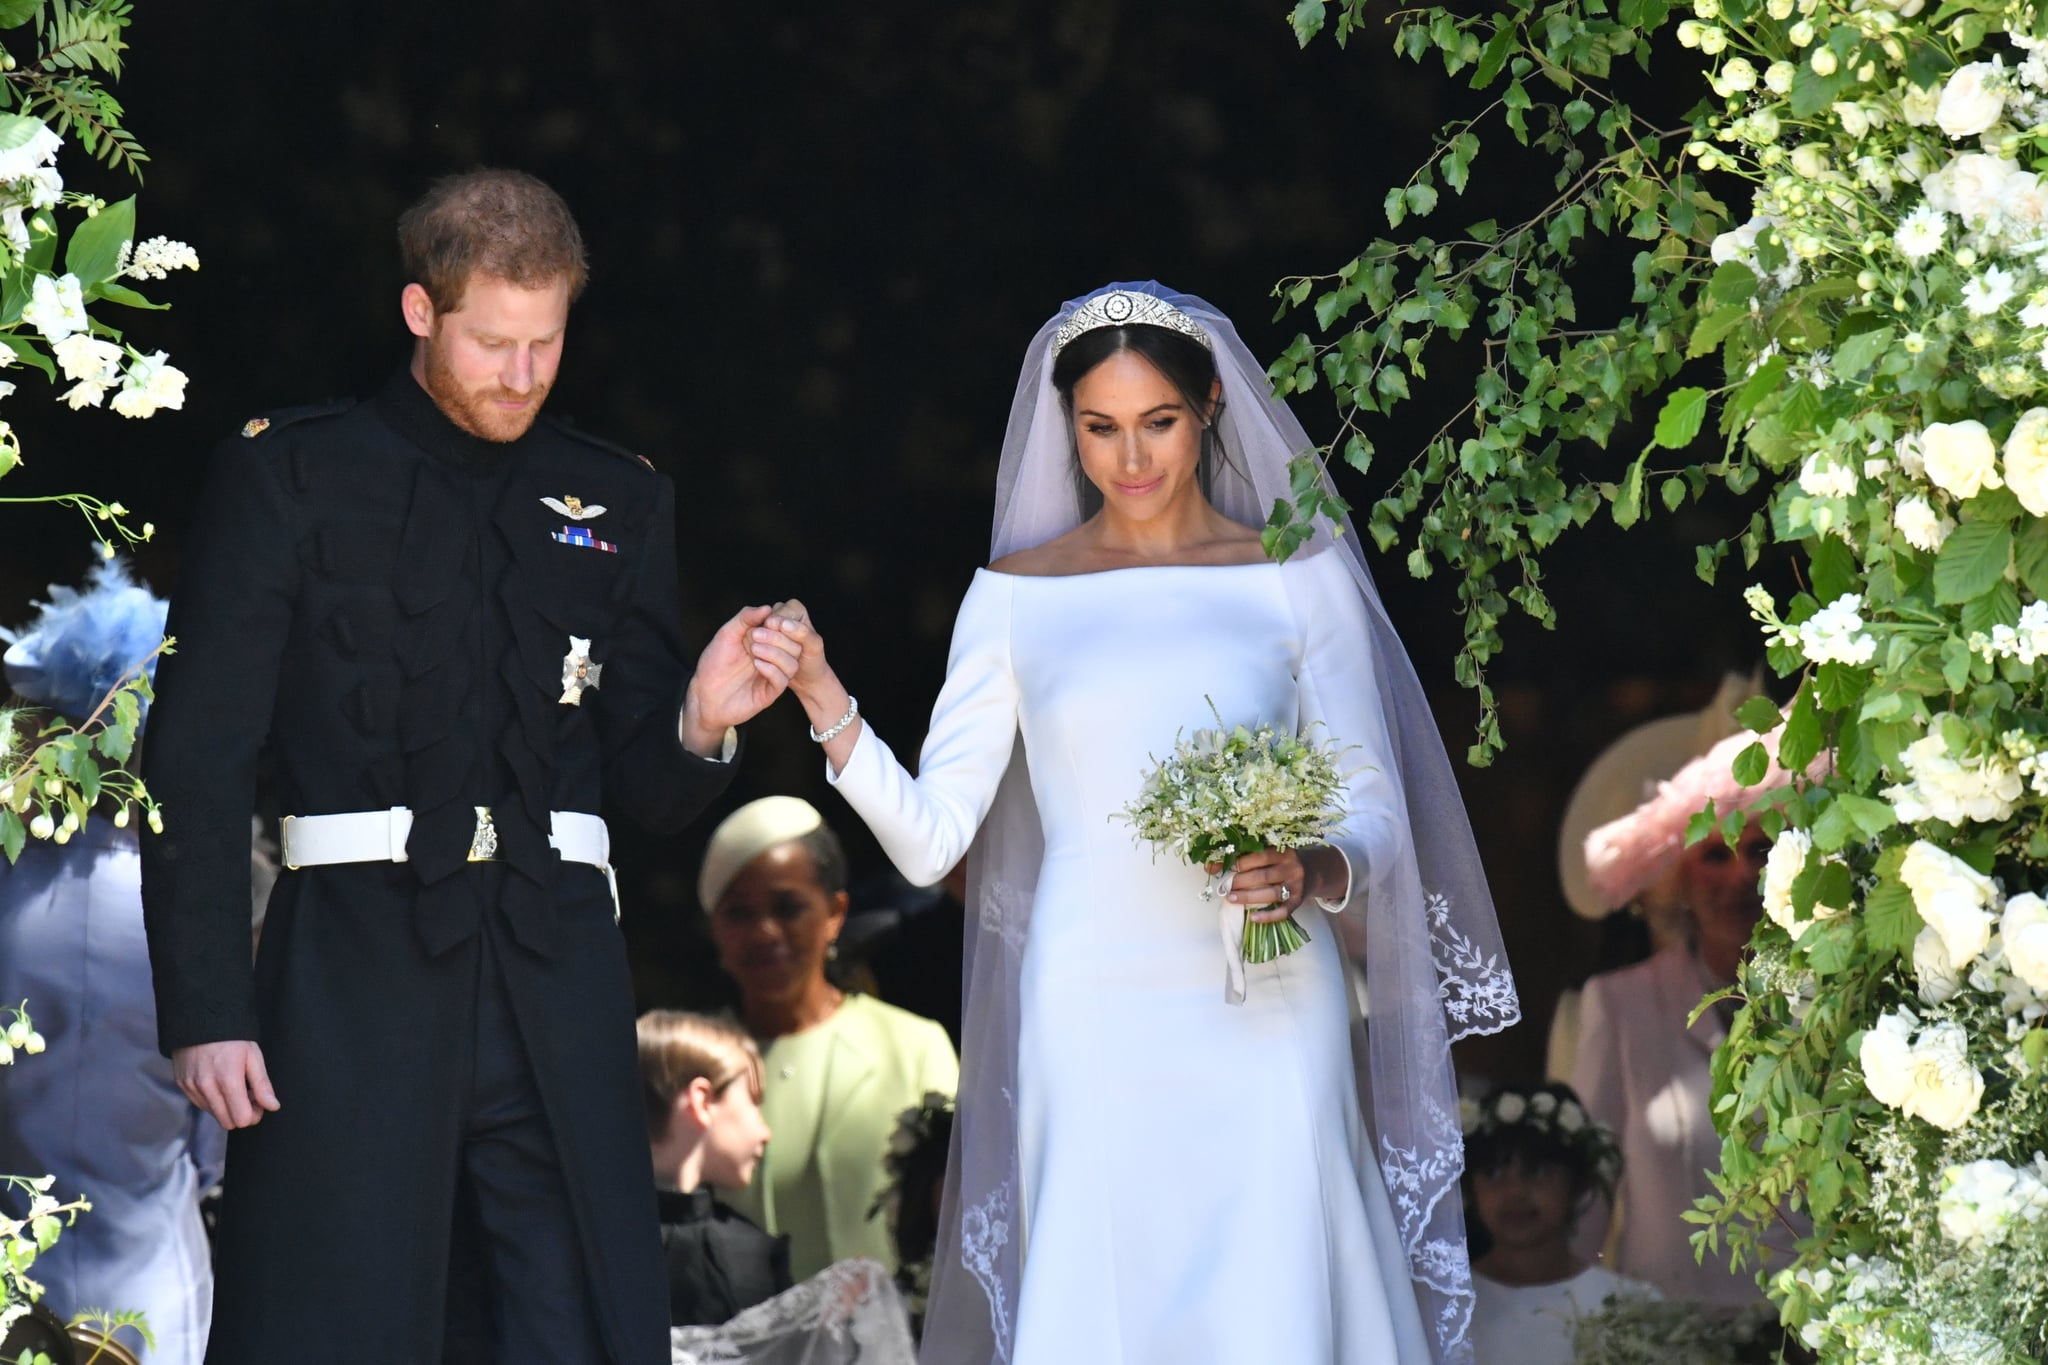 prince harry and meghan markle wedding pictures popsugar celebrity prince harry and meghan markle wedding